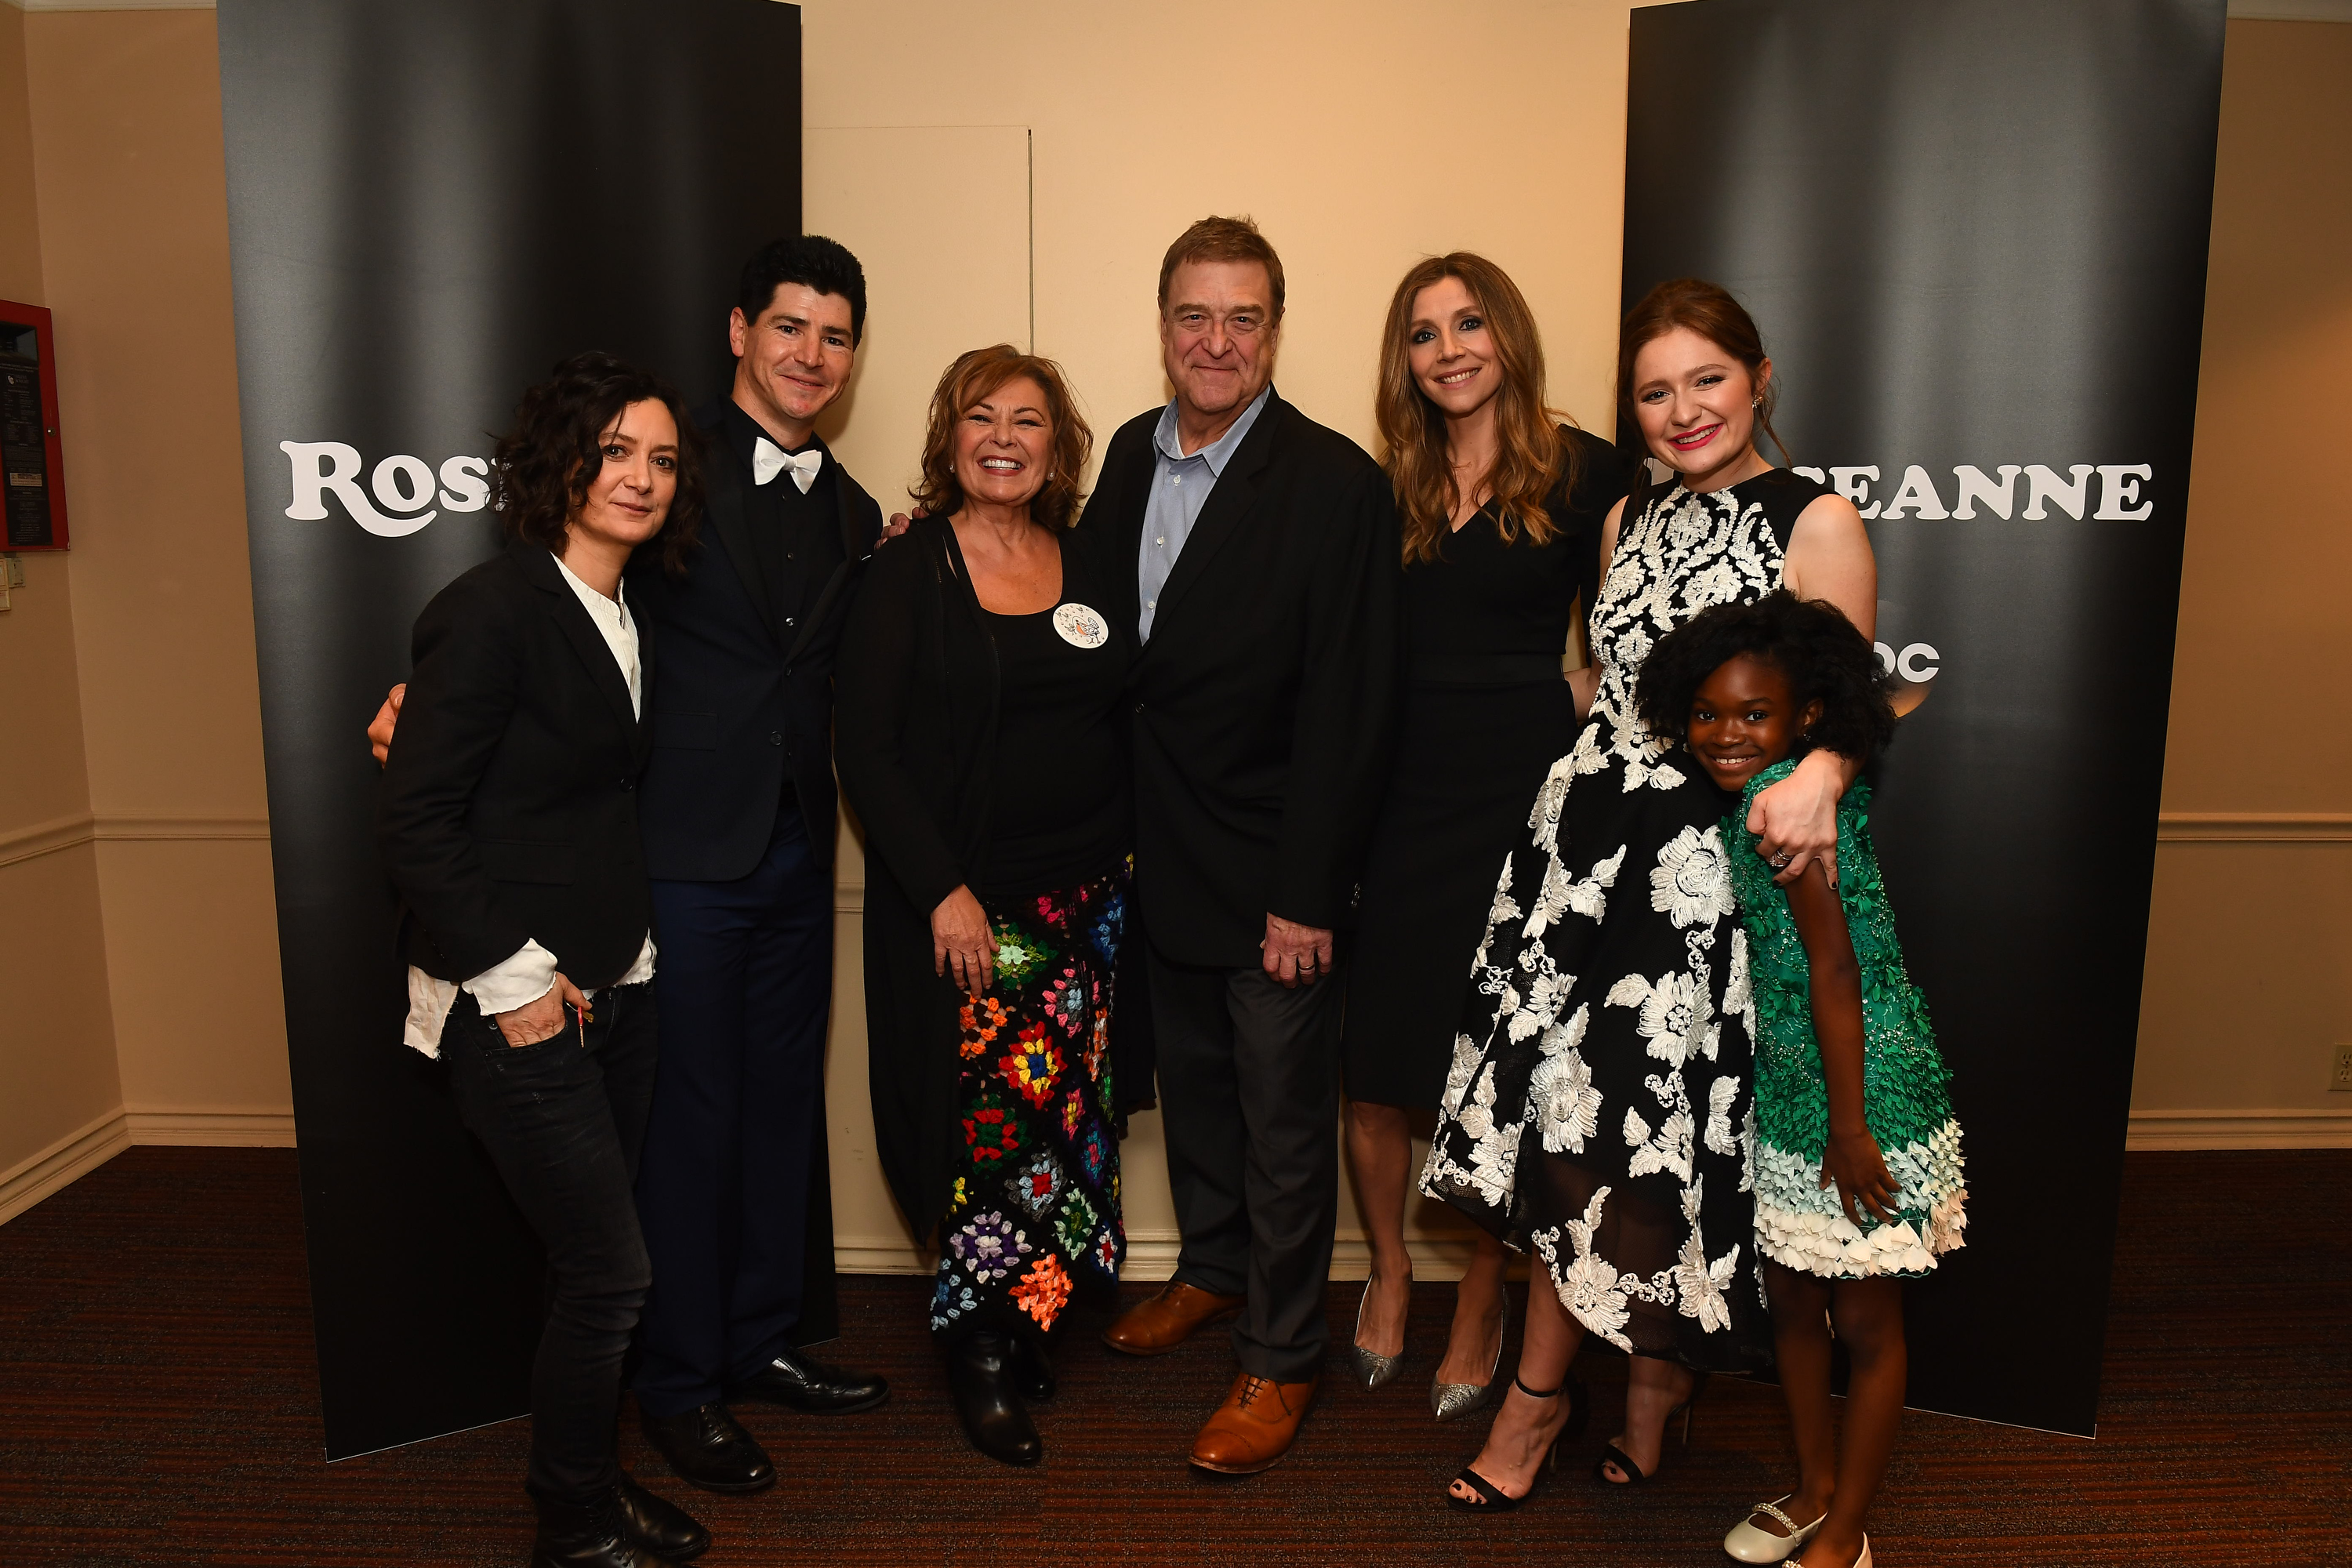 Abcs Roseanne Treated Fans To A Special Screening And Meet And